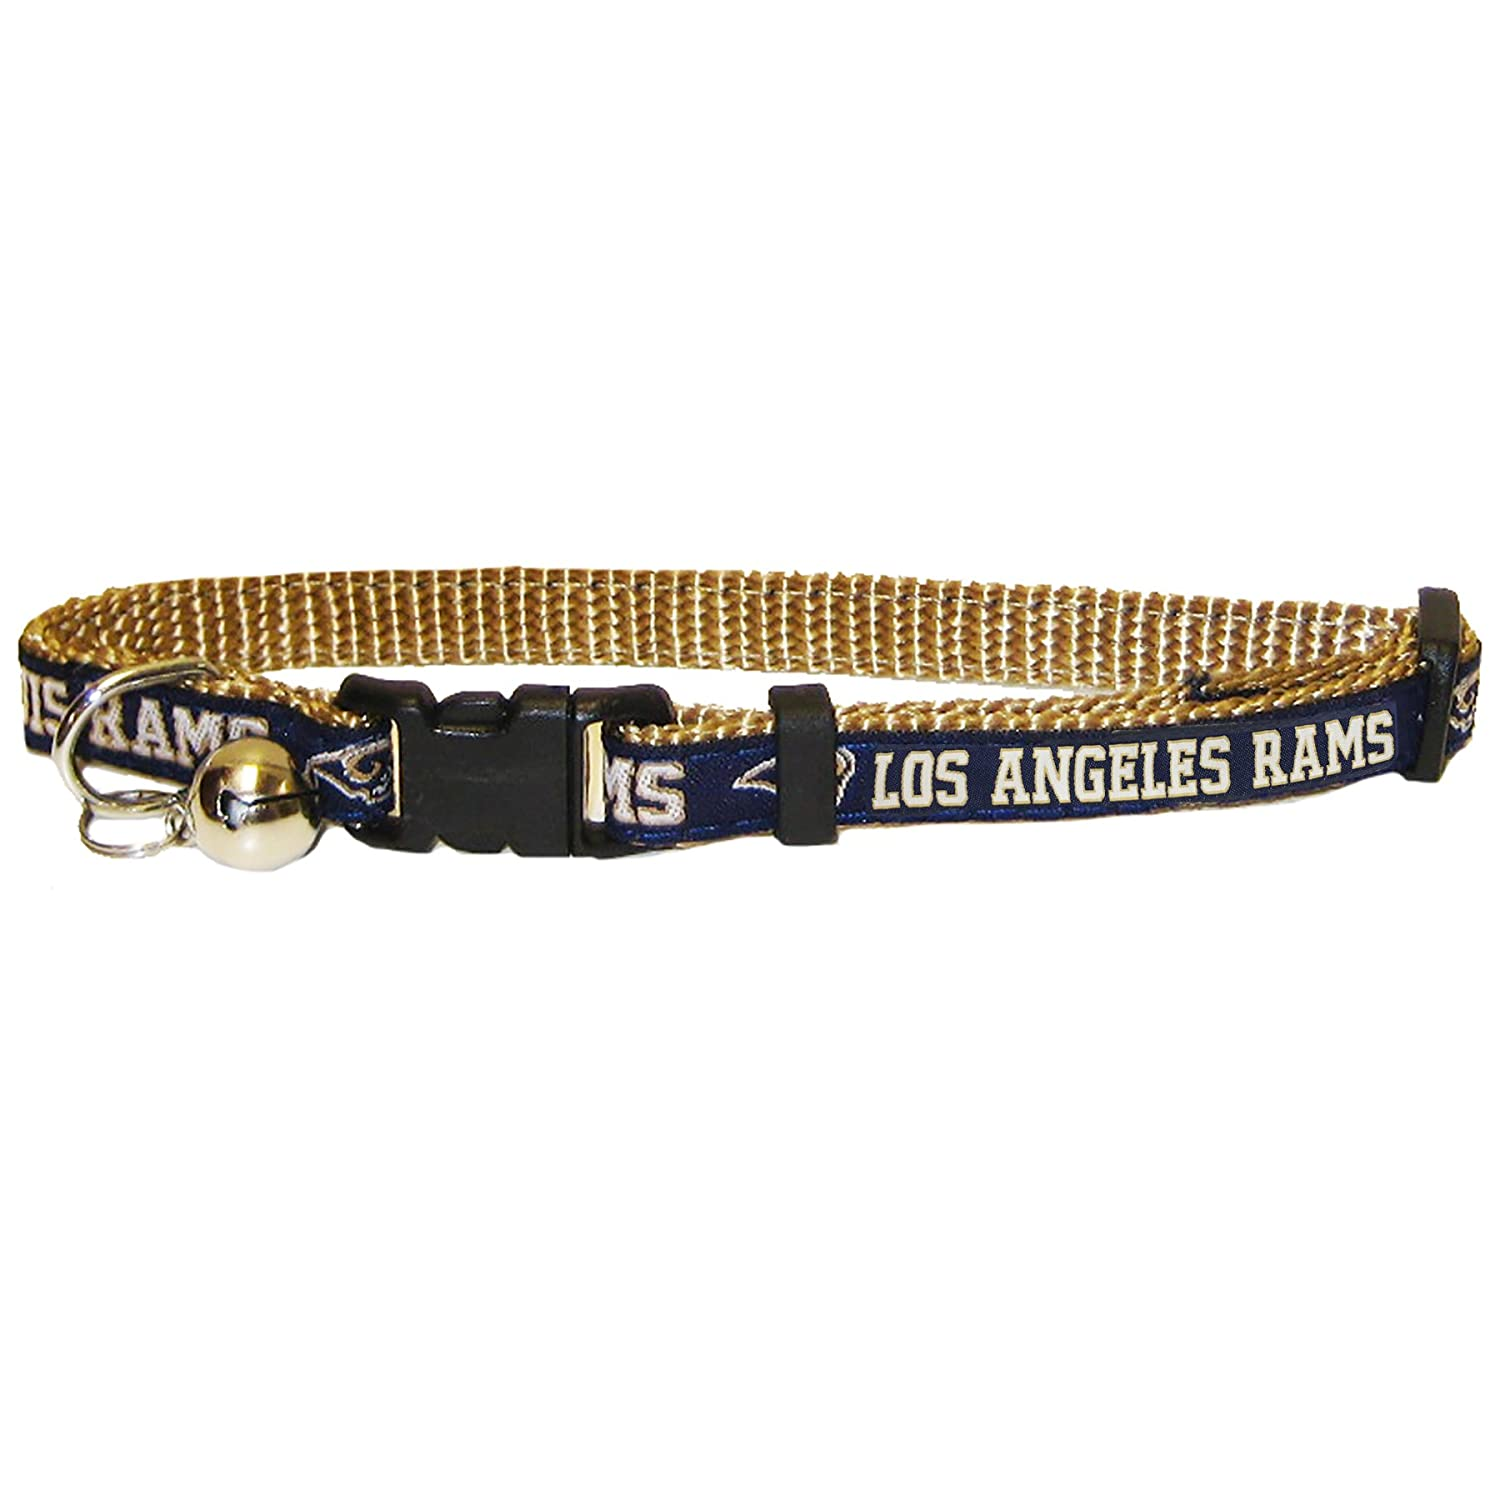 Strong /& Adjustable Football Cat Collars with Metal Jingle Bell Pets First NFL CAT Collar